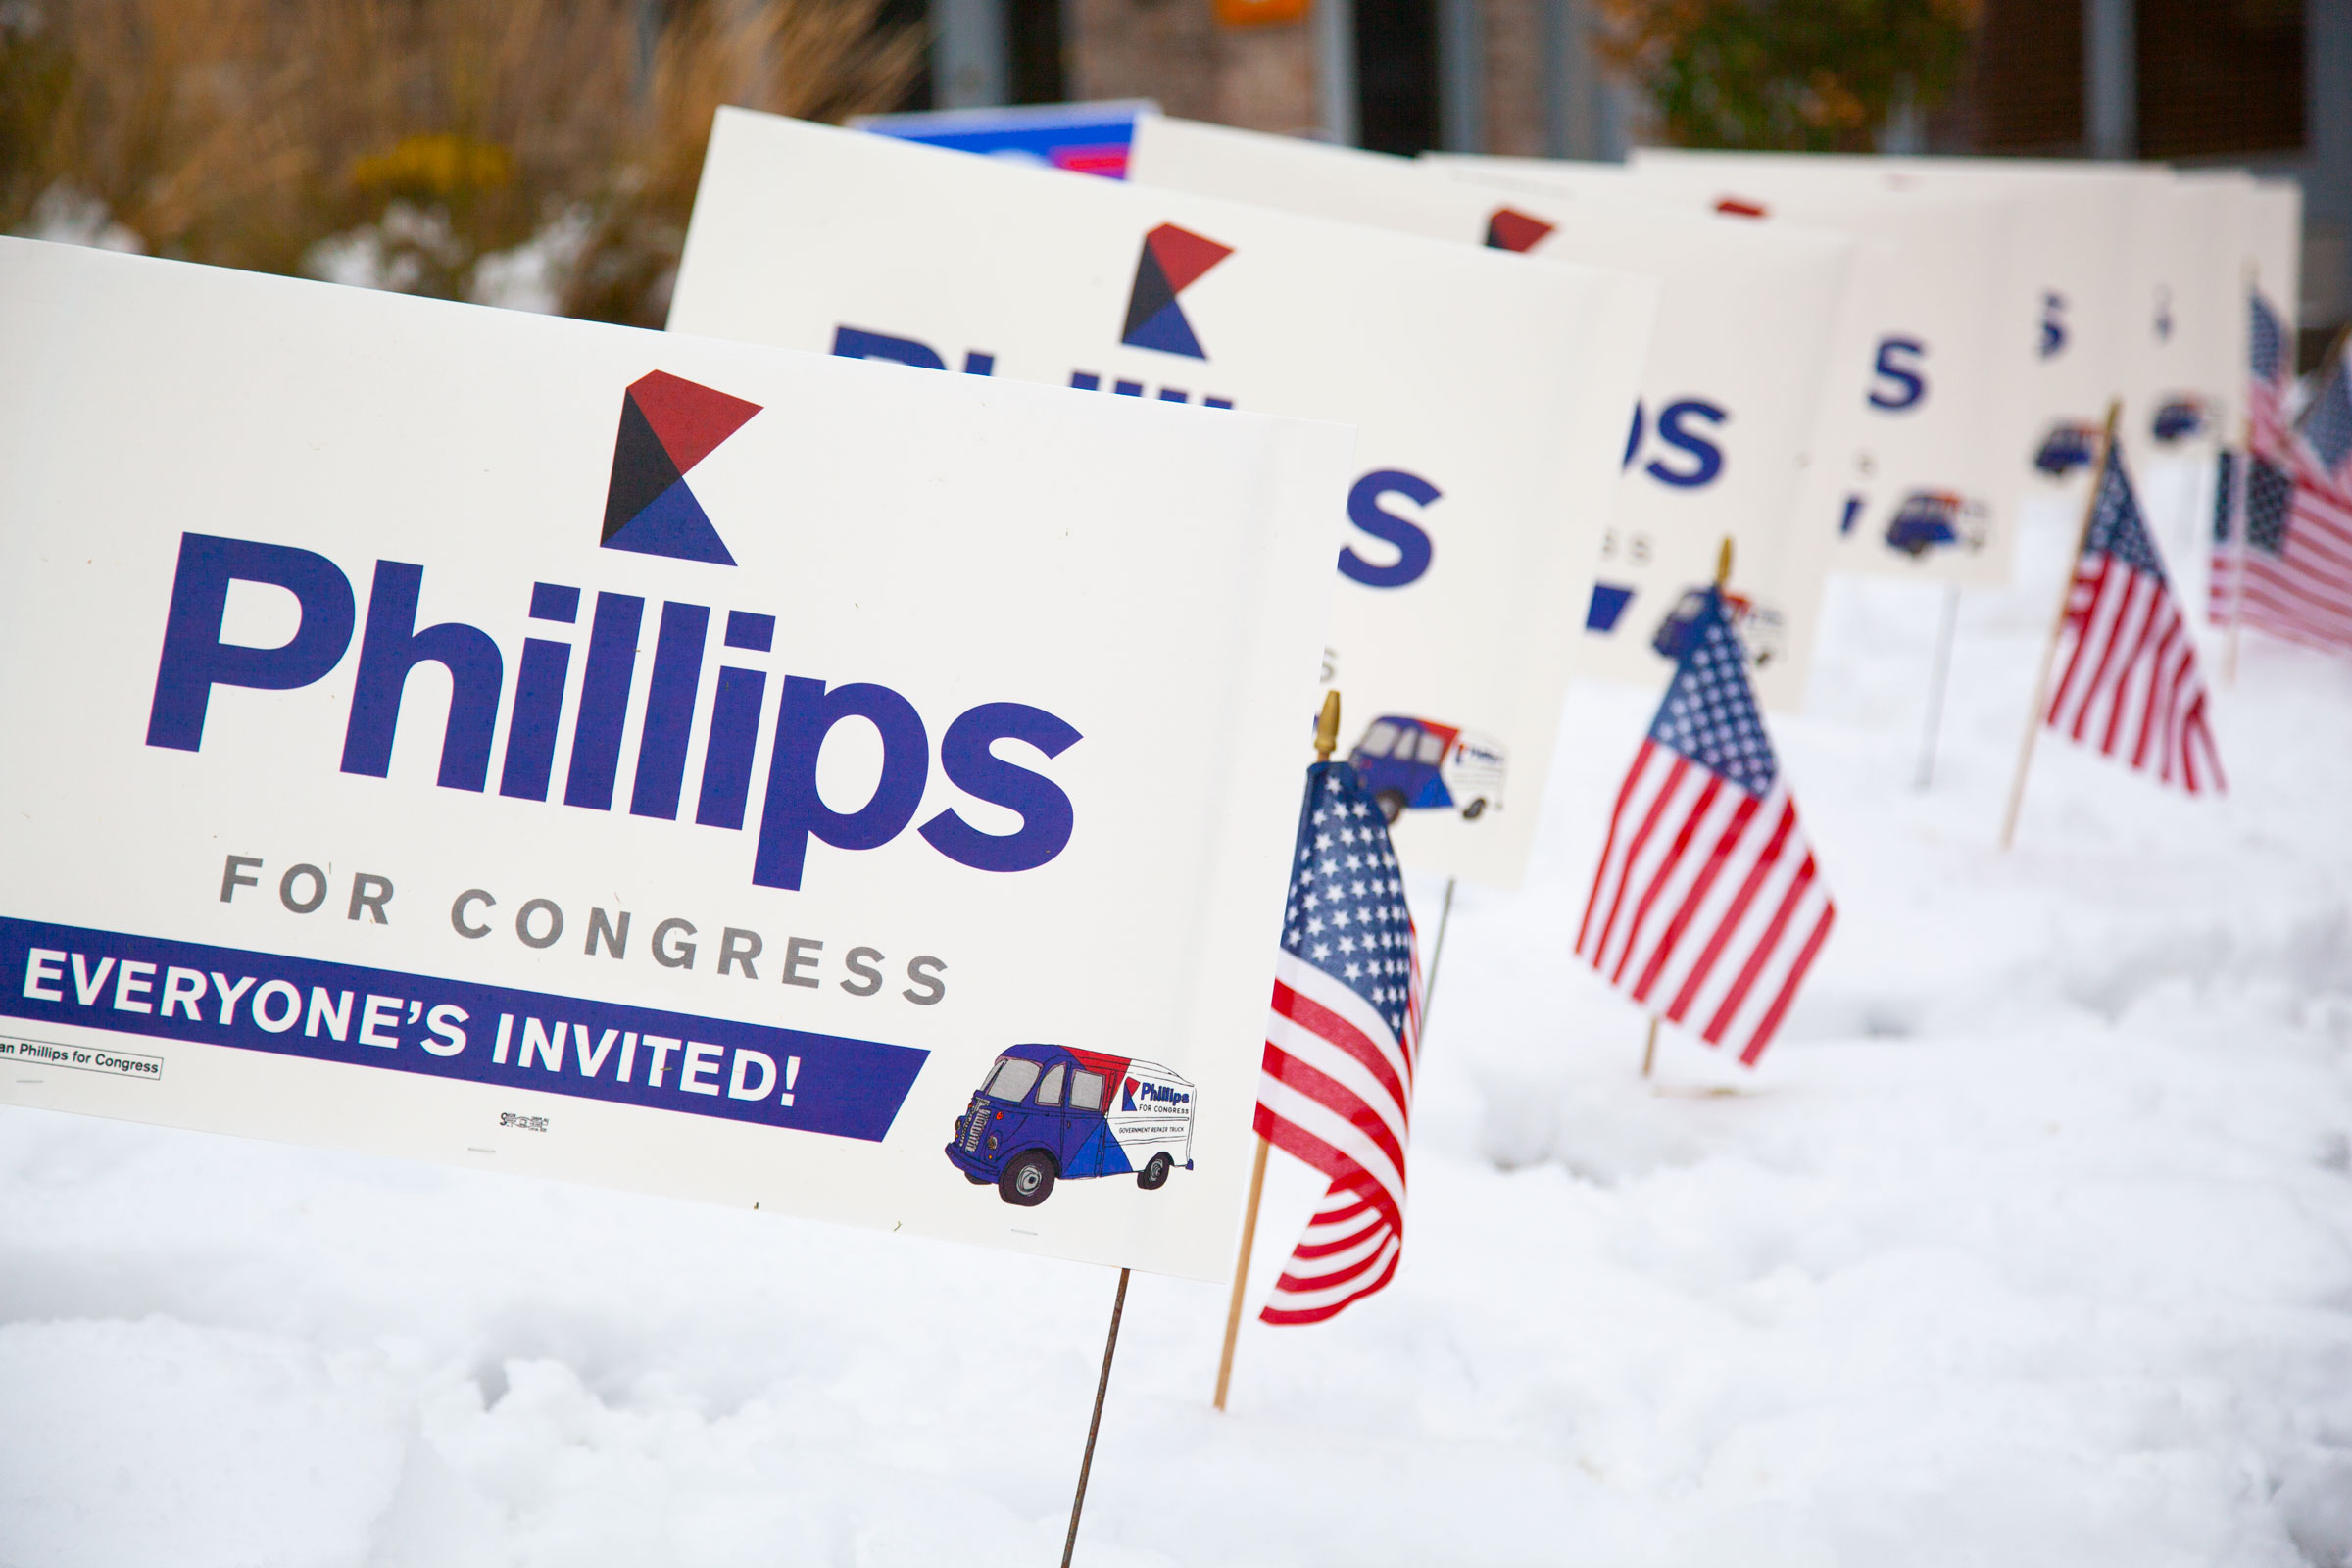 Phillips for Congress supporter with her yard sign